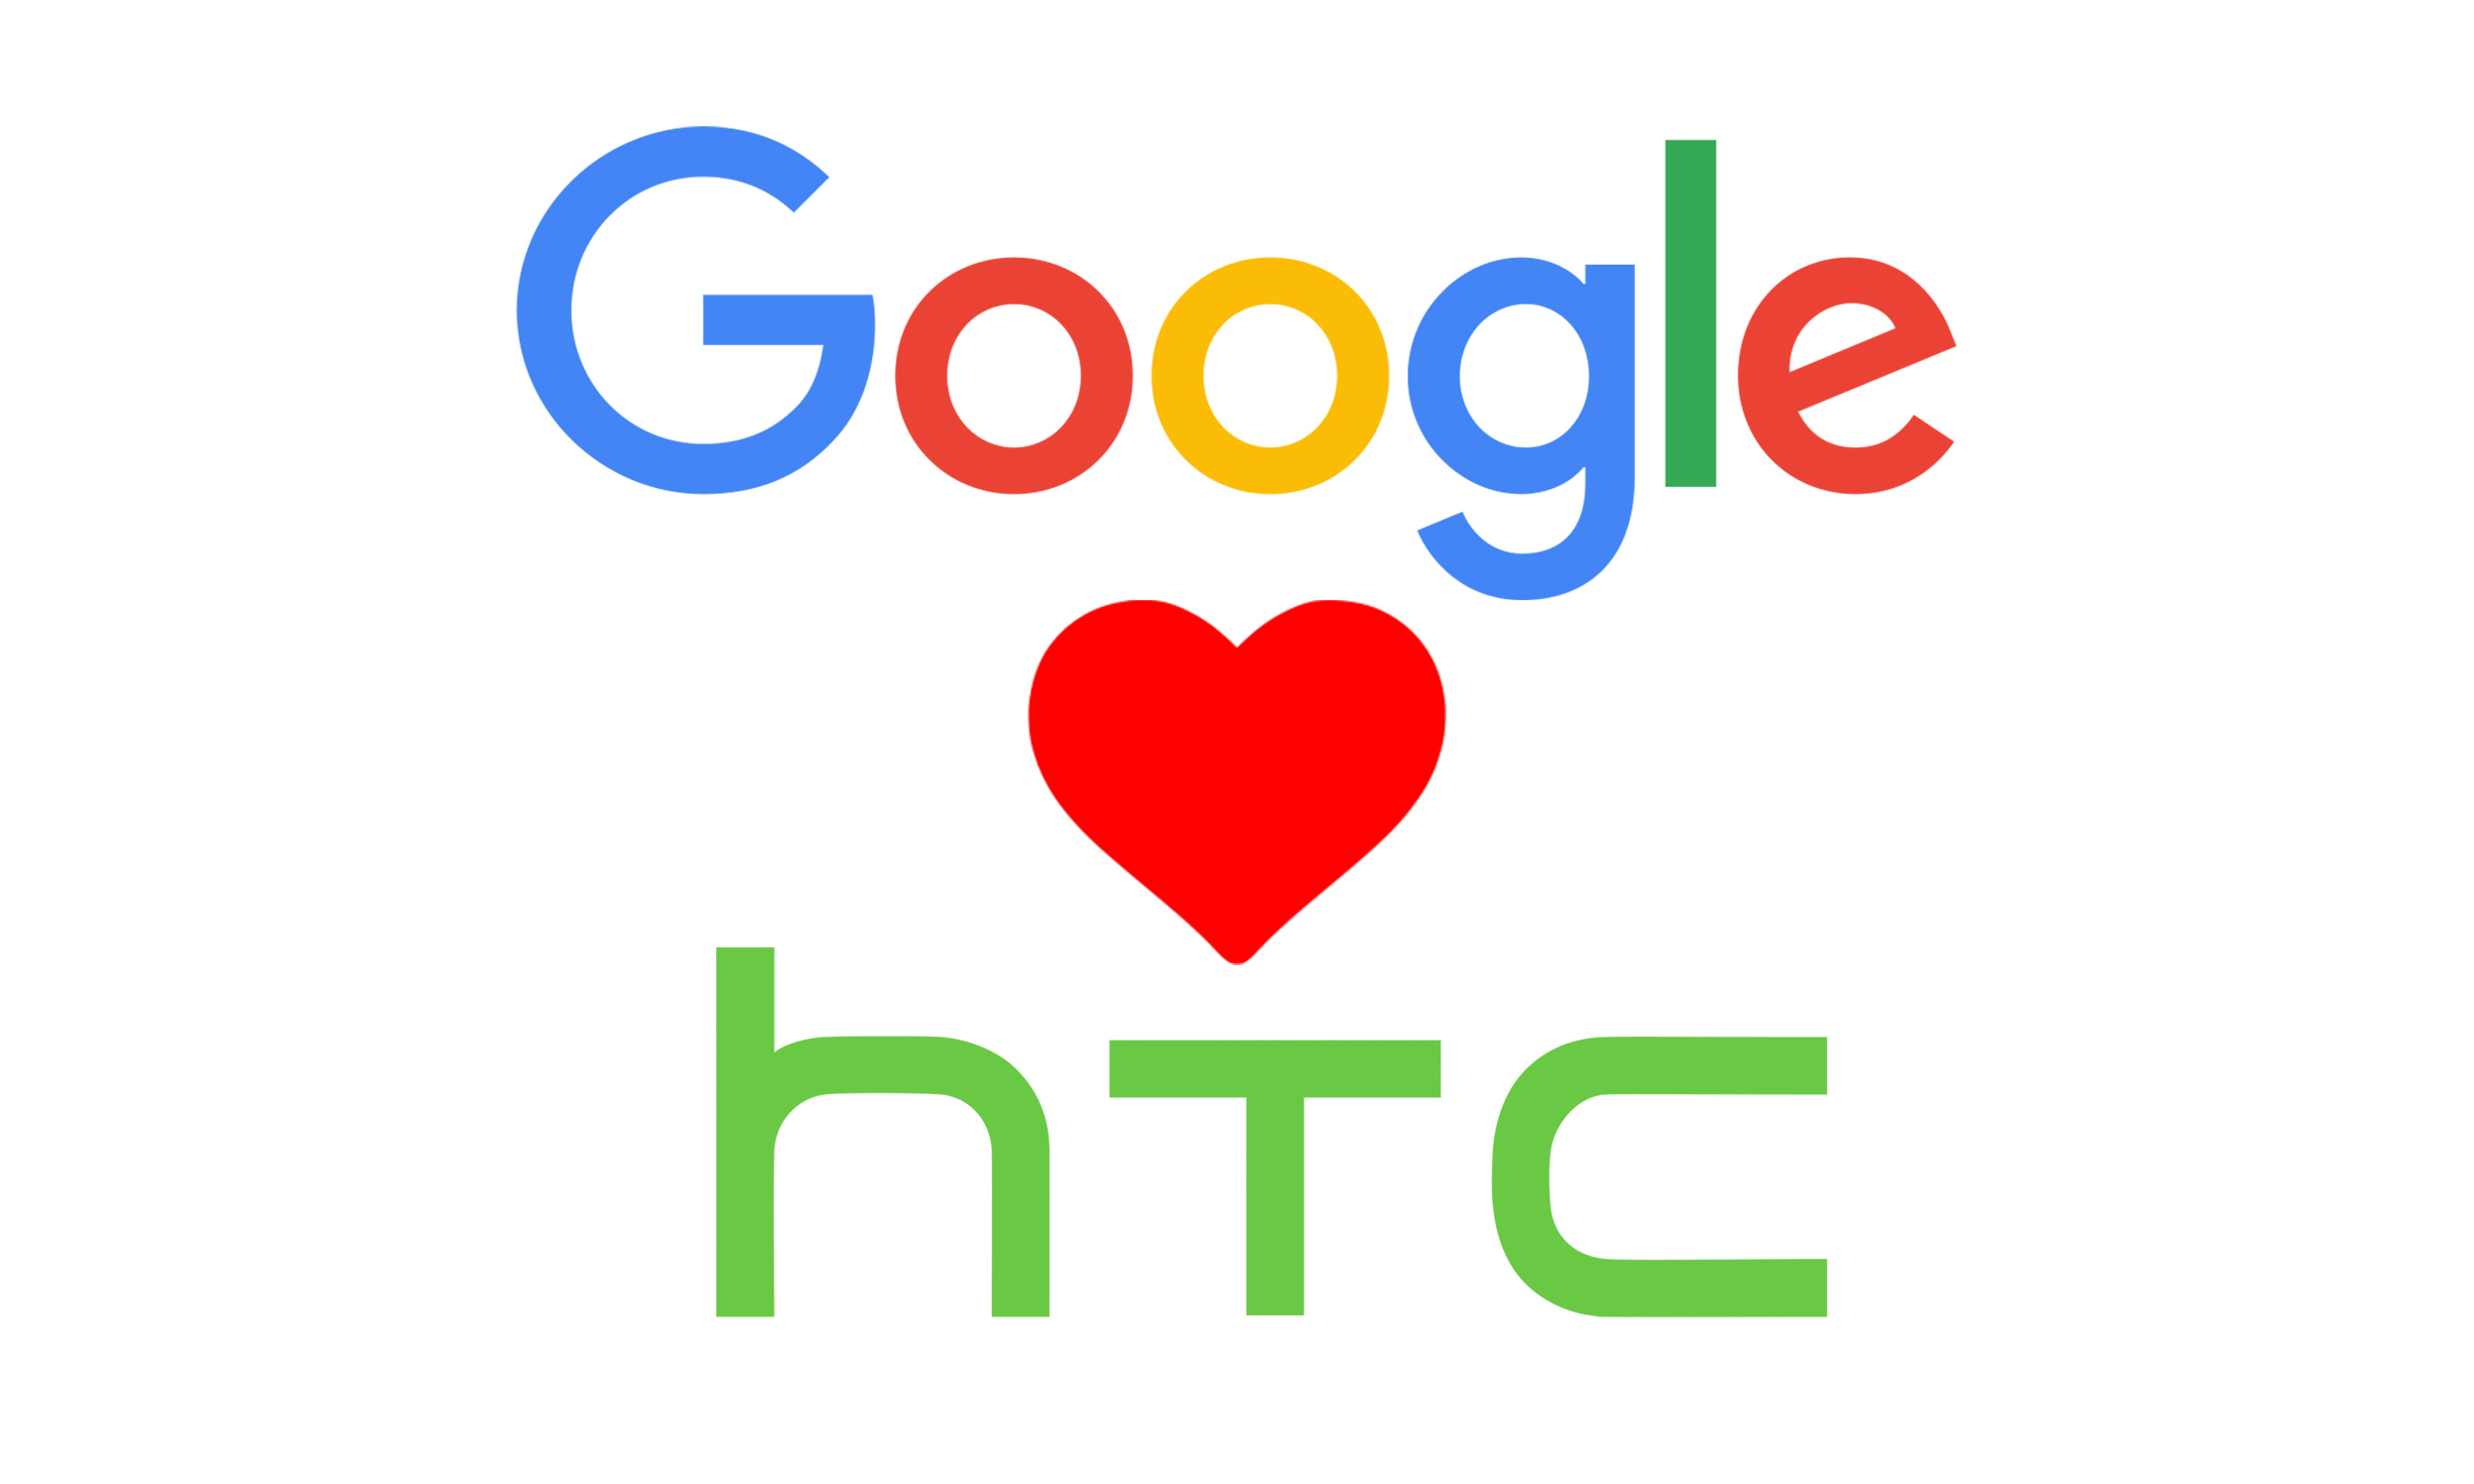 Google: Google/HTC Deal Is Official, Google To Acquire Part Of HTC